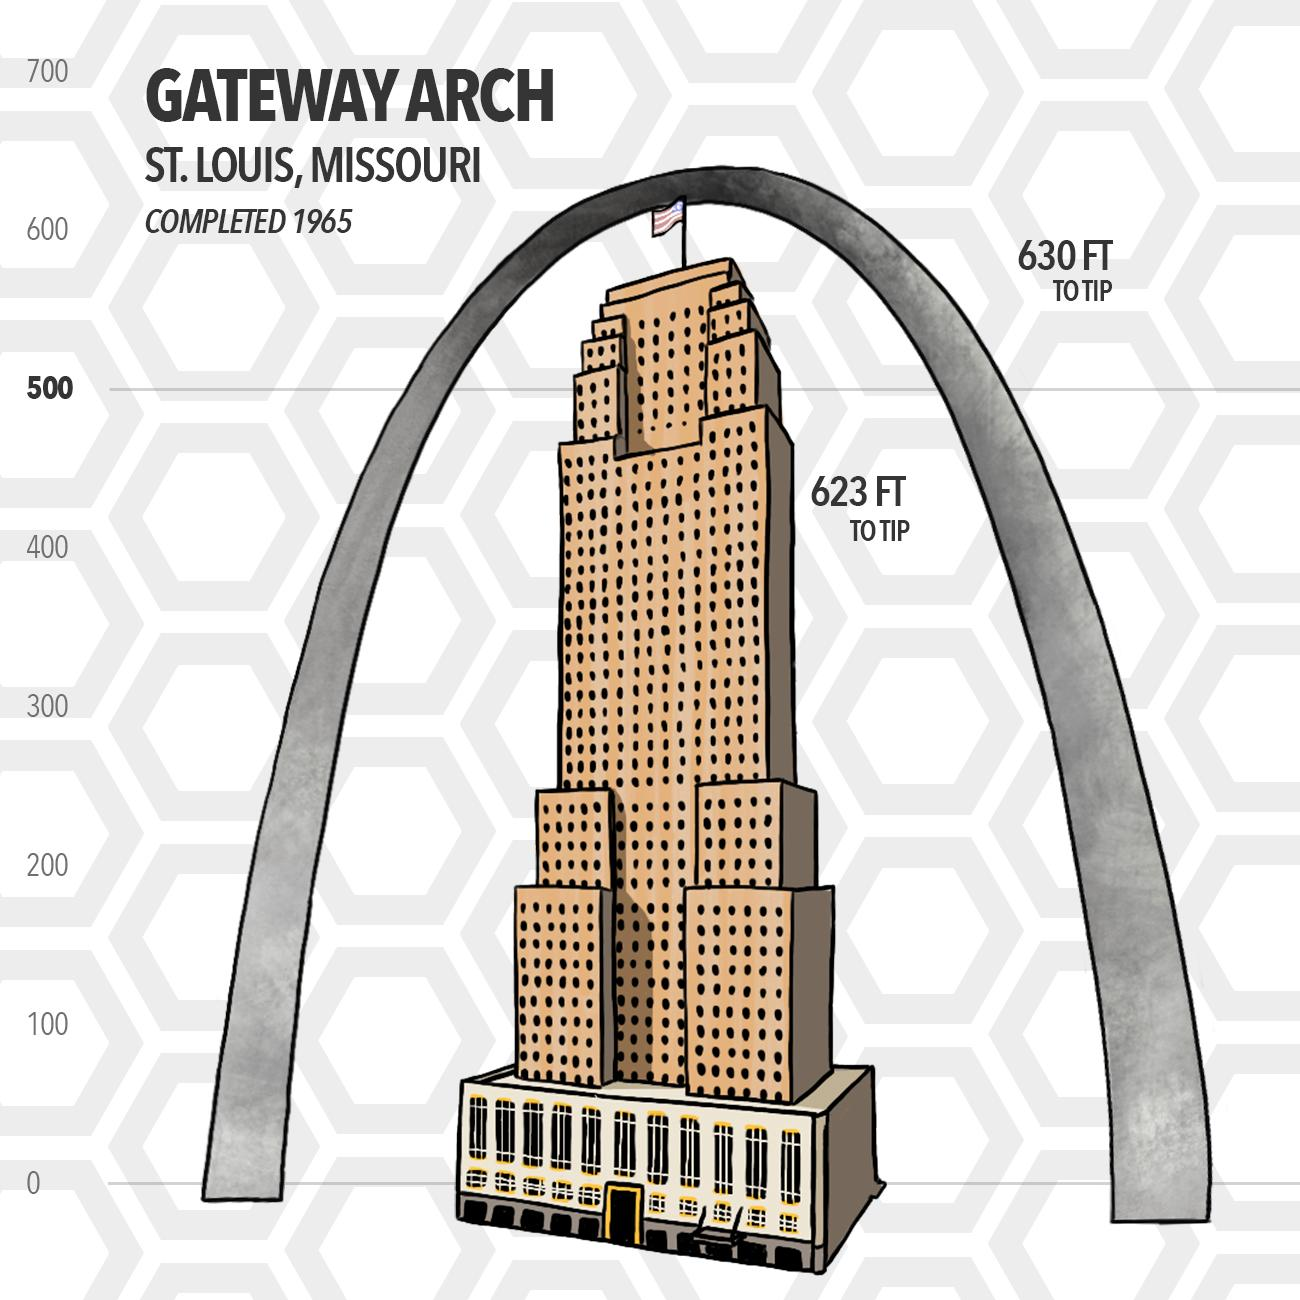 The Gateway Arch in St. Louis, Missouri is barely taller than the Carew Tower to its tip. Much like Carew, the Arch features an observation deck that's open to the public, though it's enclosed (unlike Carew's observation deck). It was completed 35 years after Carew. (Source: SkyscraperCenter.com) / Image: Phil Armstrong // Published: 5.15.19